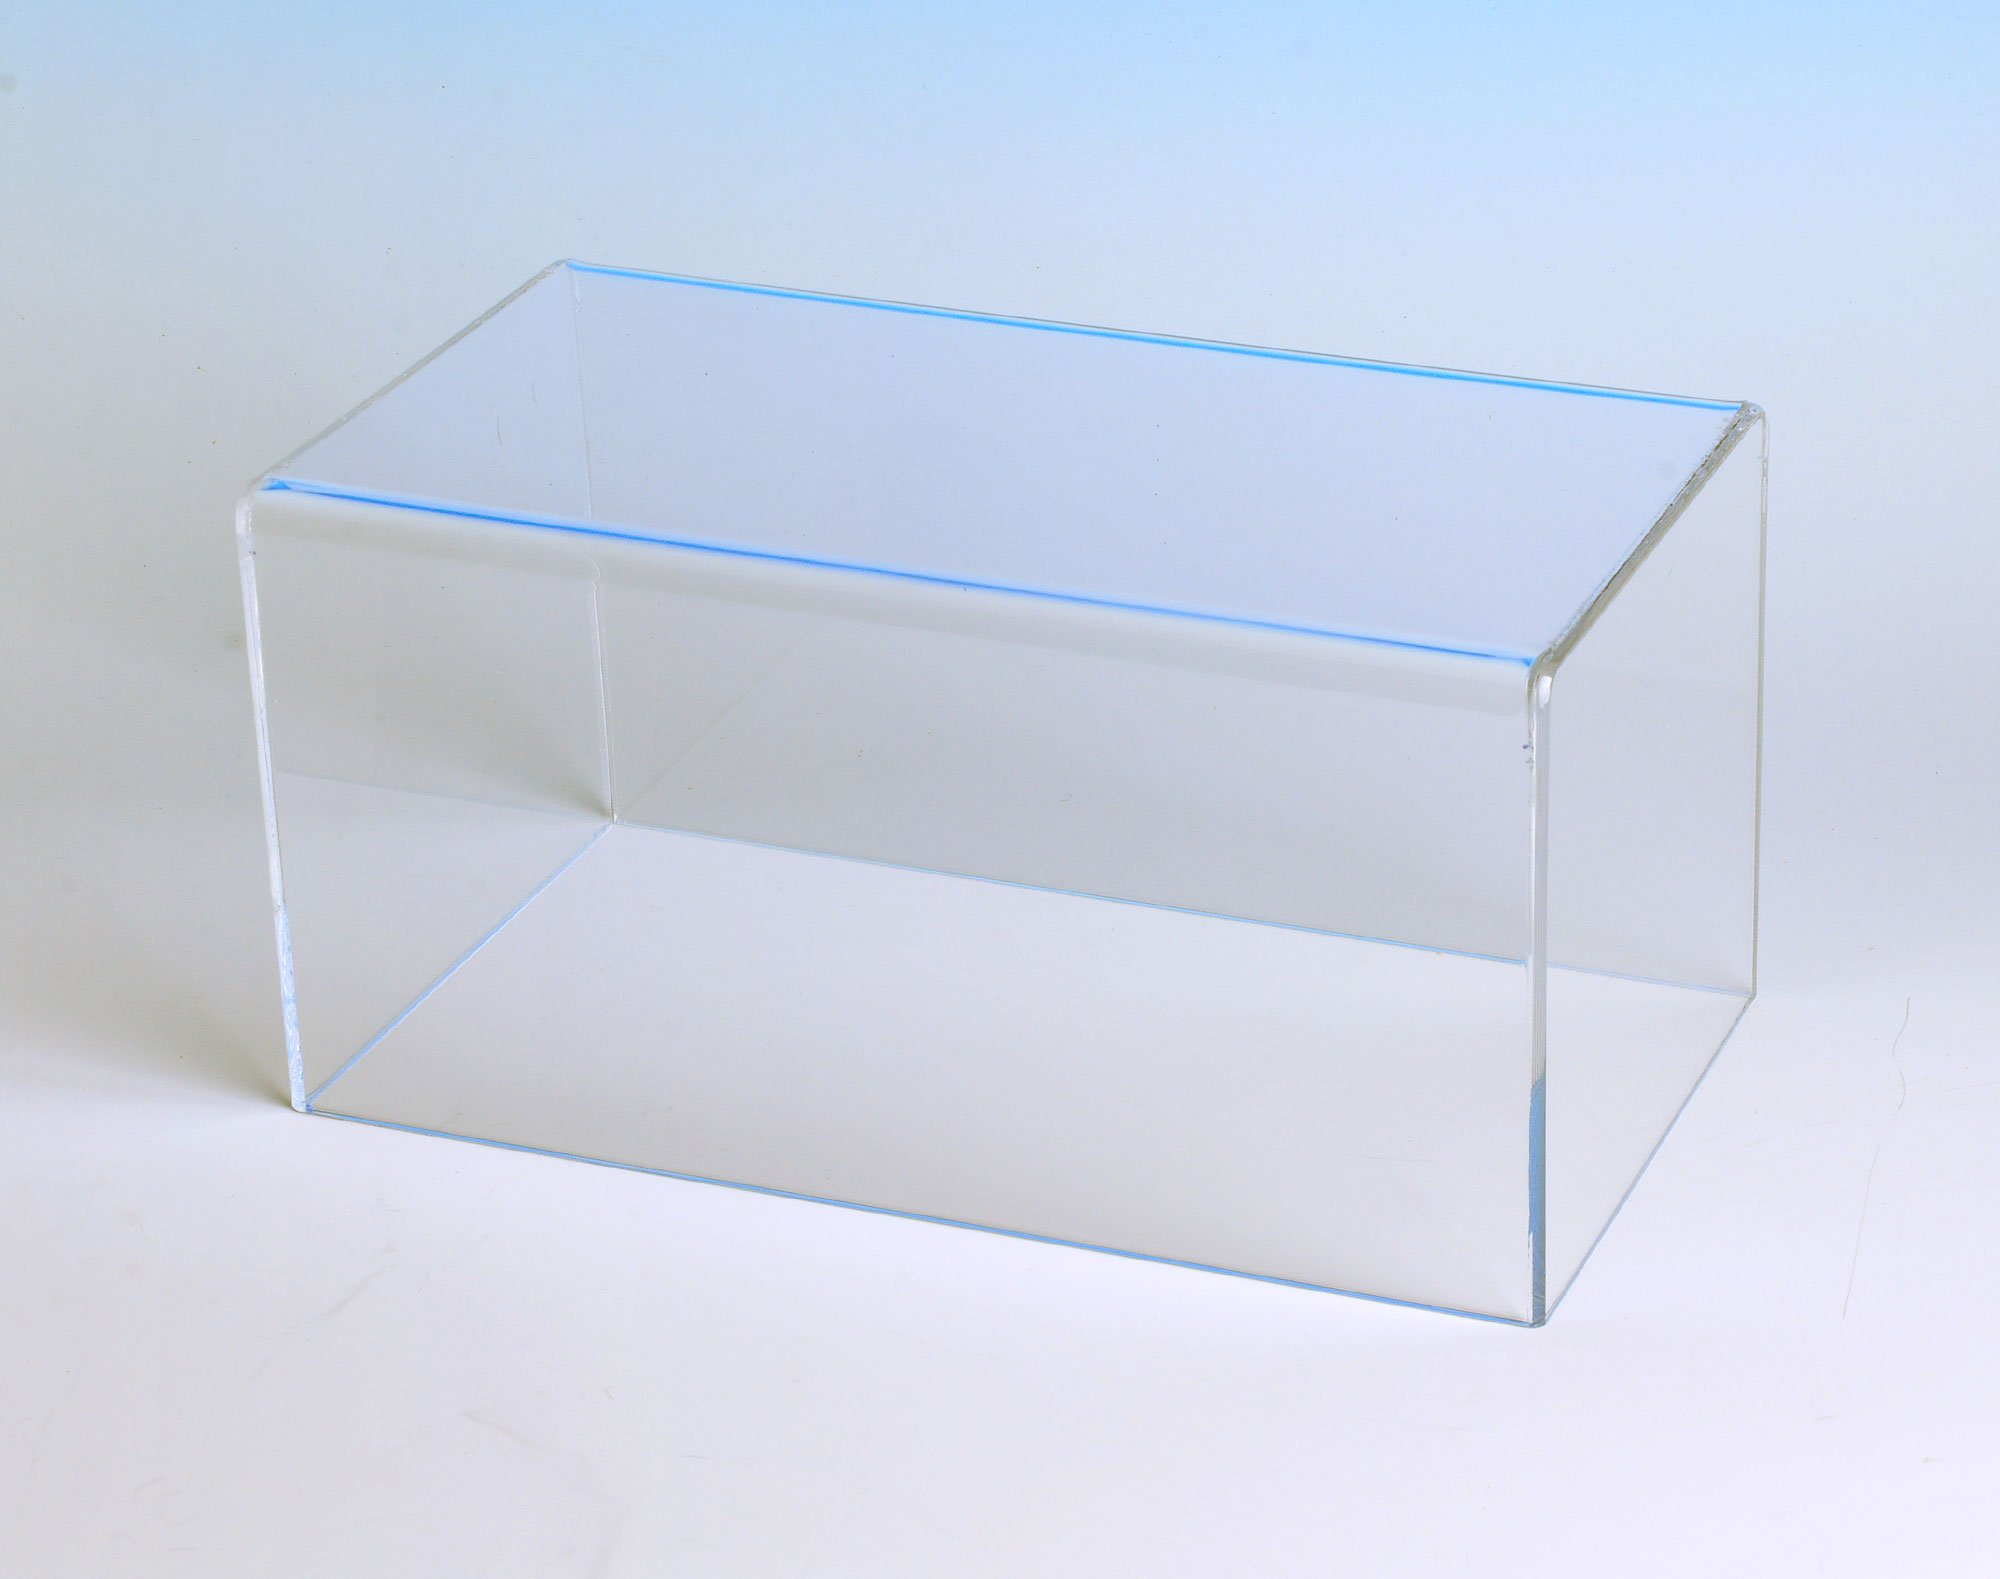 Rectangular Box Case | 5 Sided Display Box with 1 Open Side | Measures 9''H x 20''W x 12''D by Choice Acrylic Displays